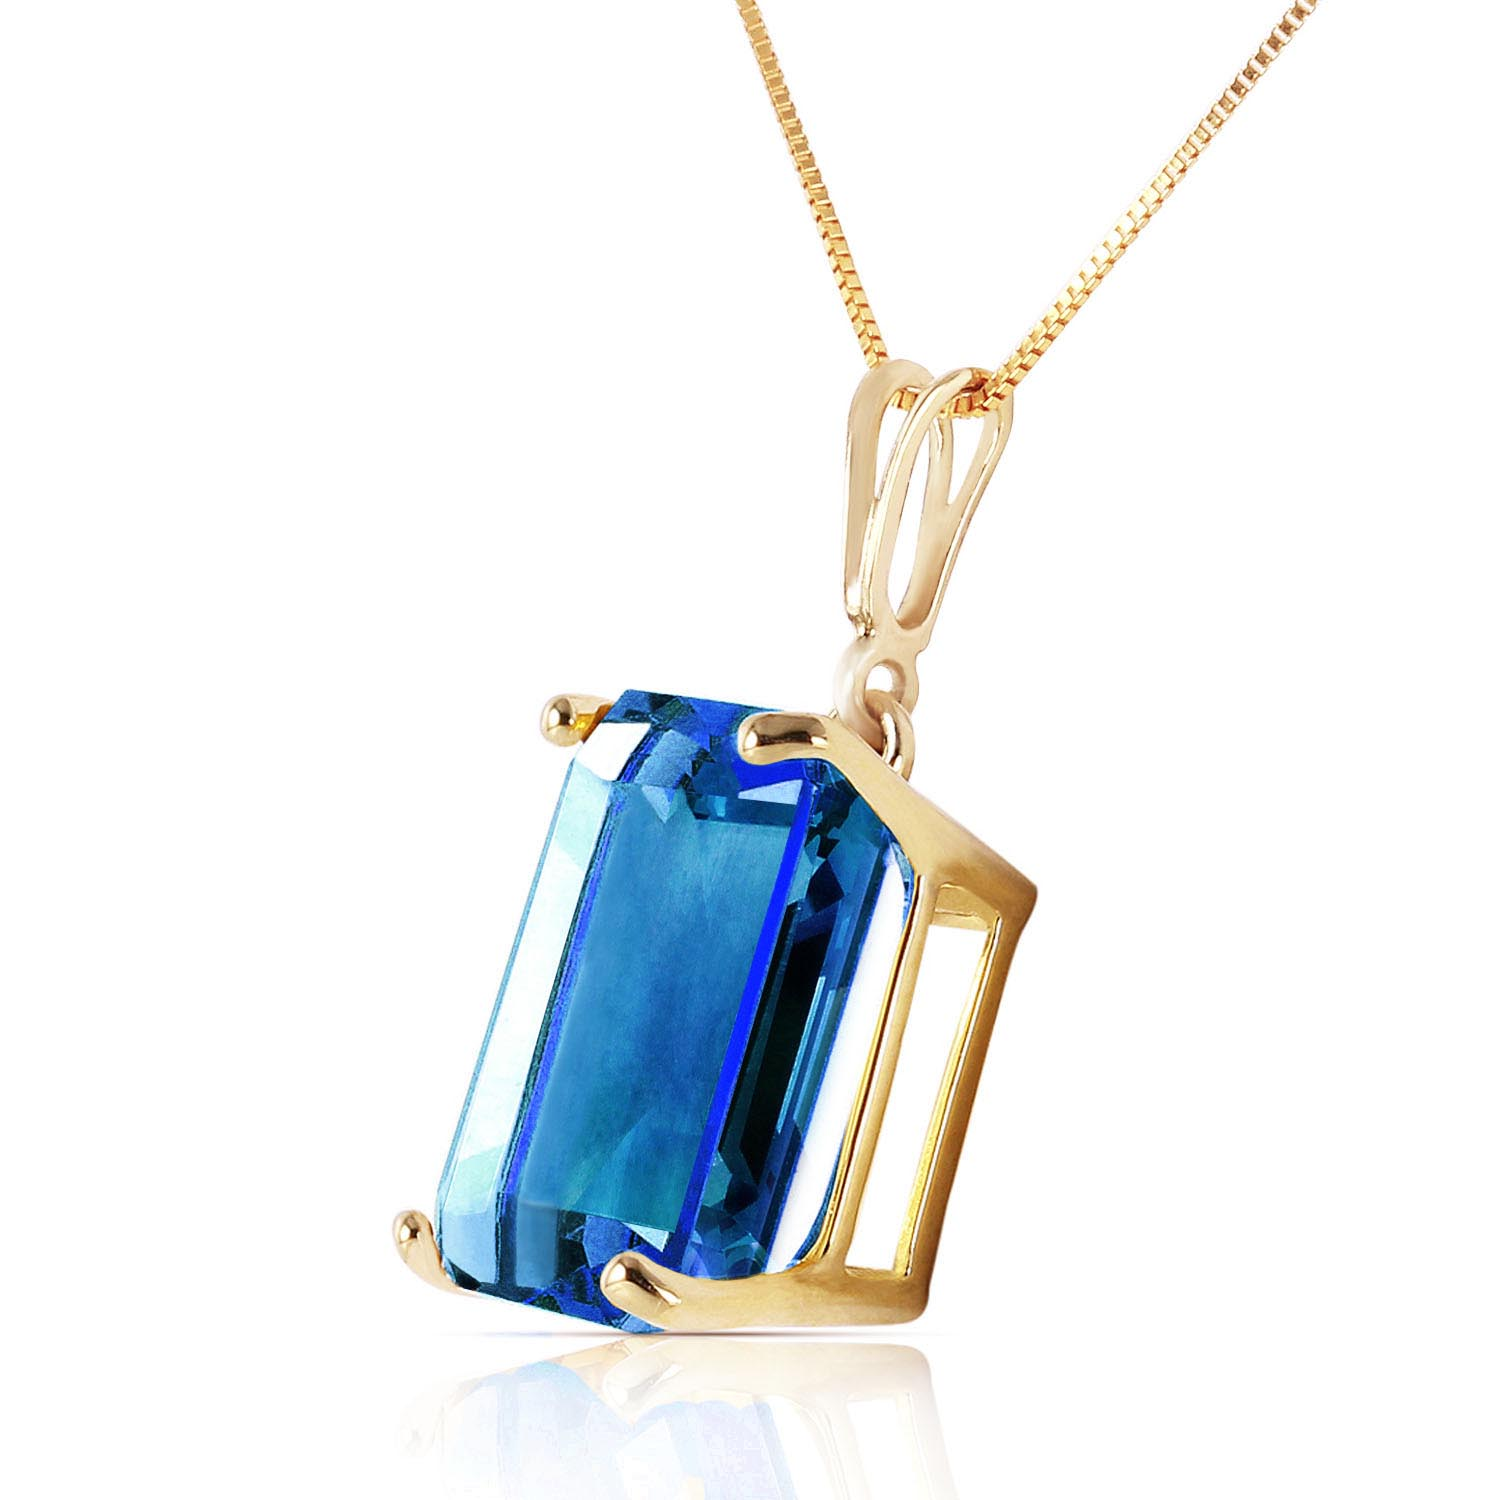 Blue Topaz Pendant Necklace 7.0ct in 9ct Gold